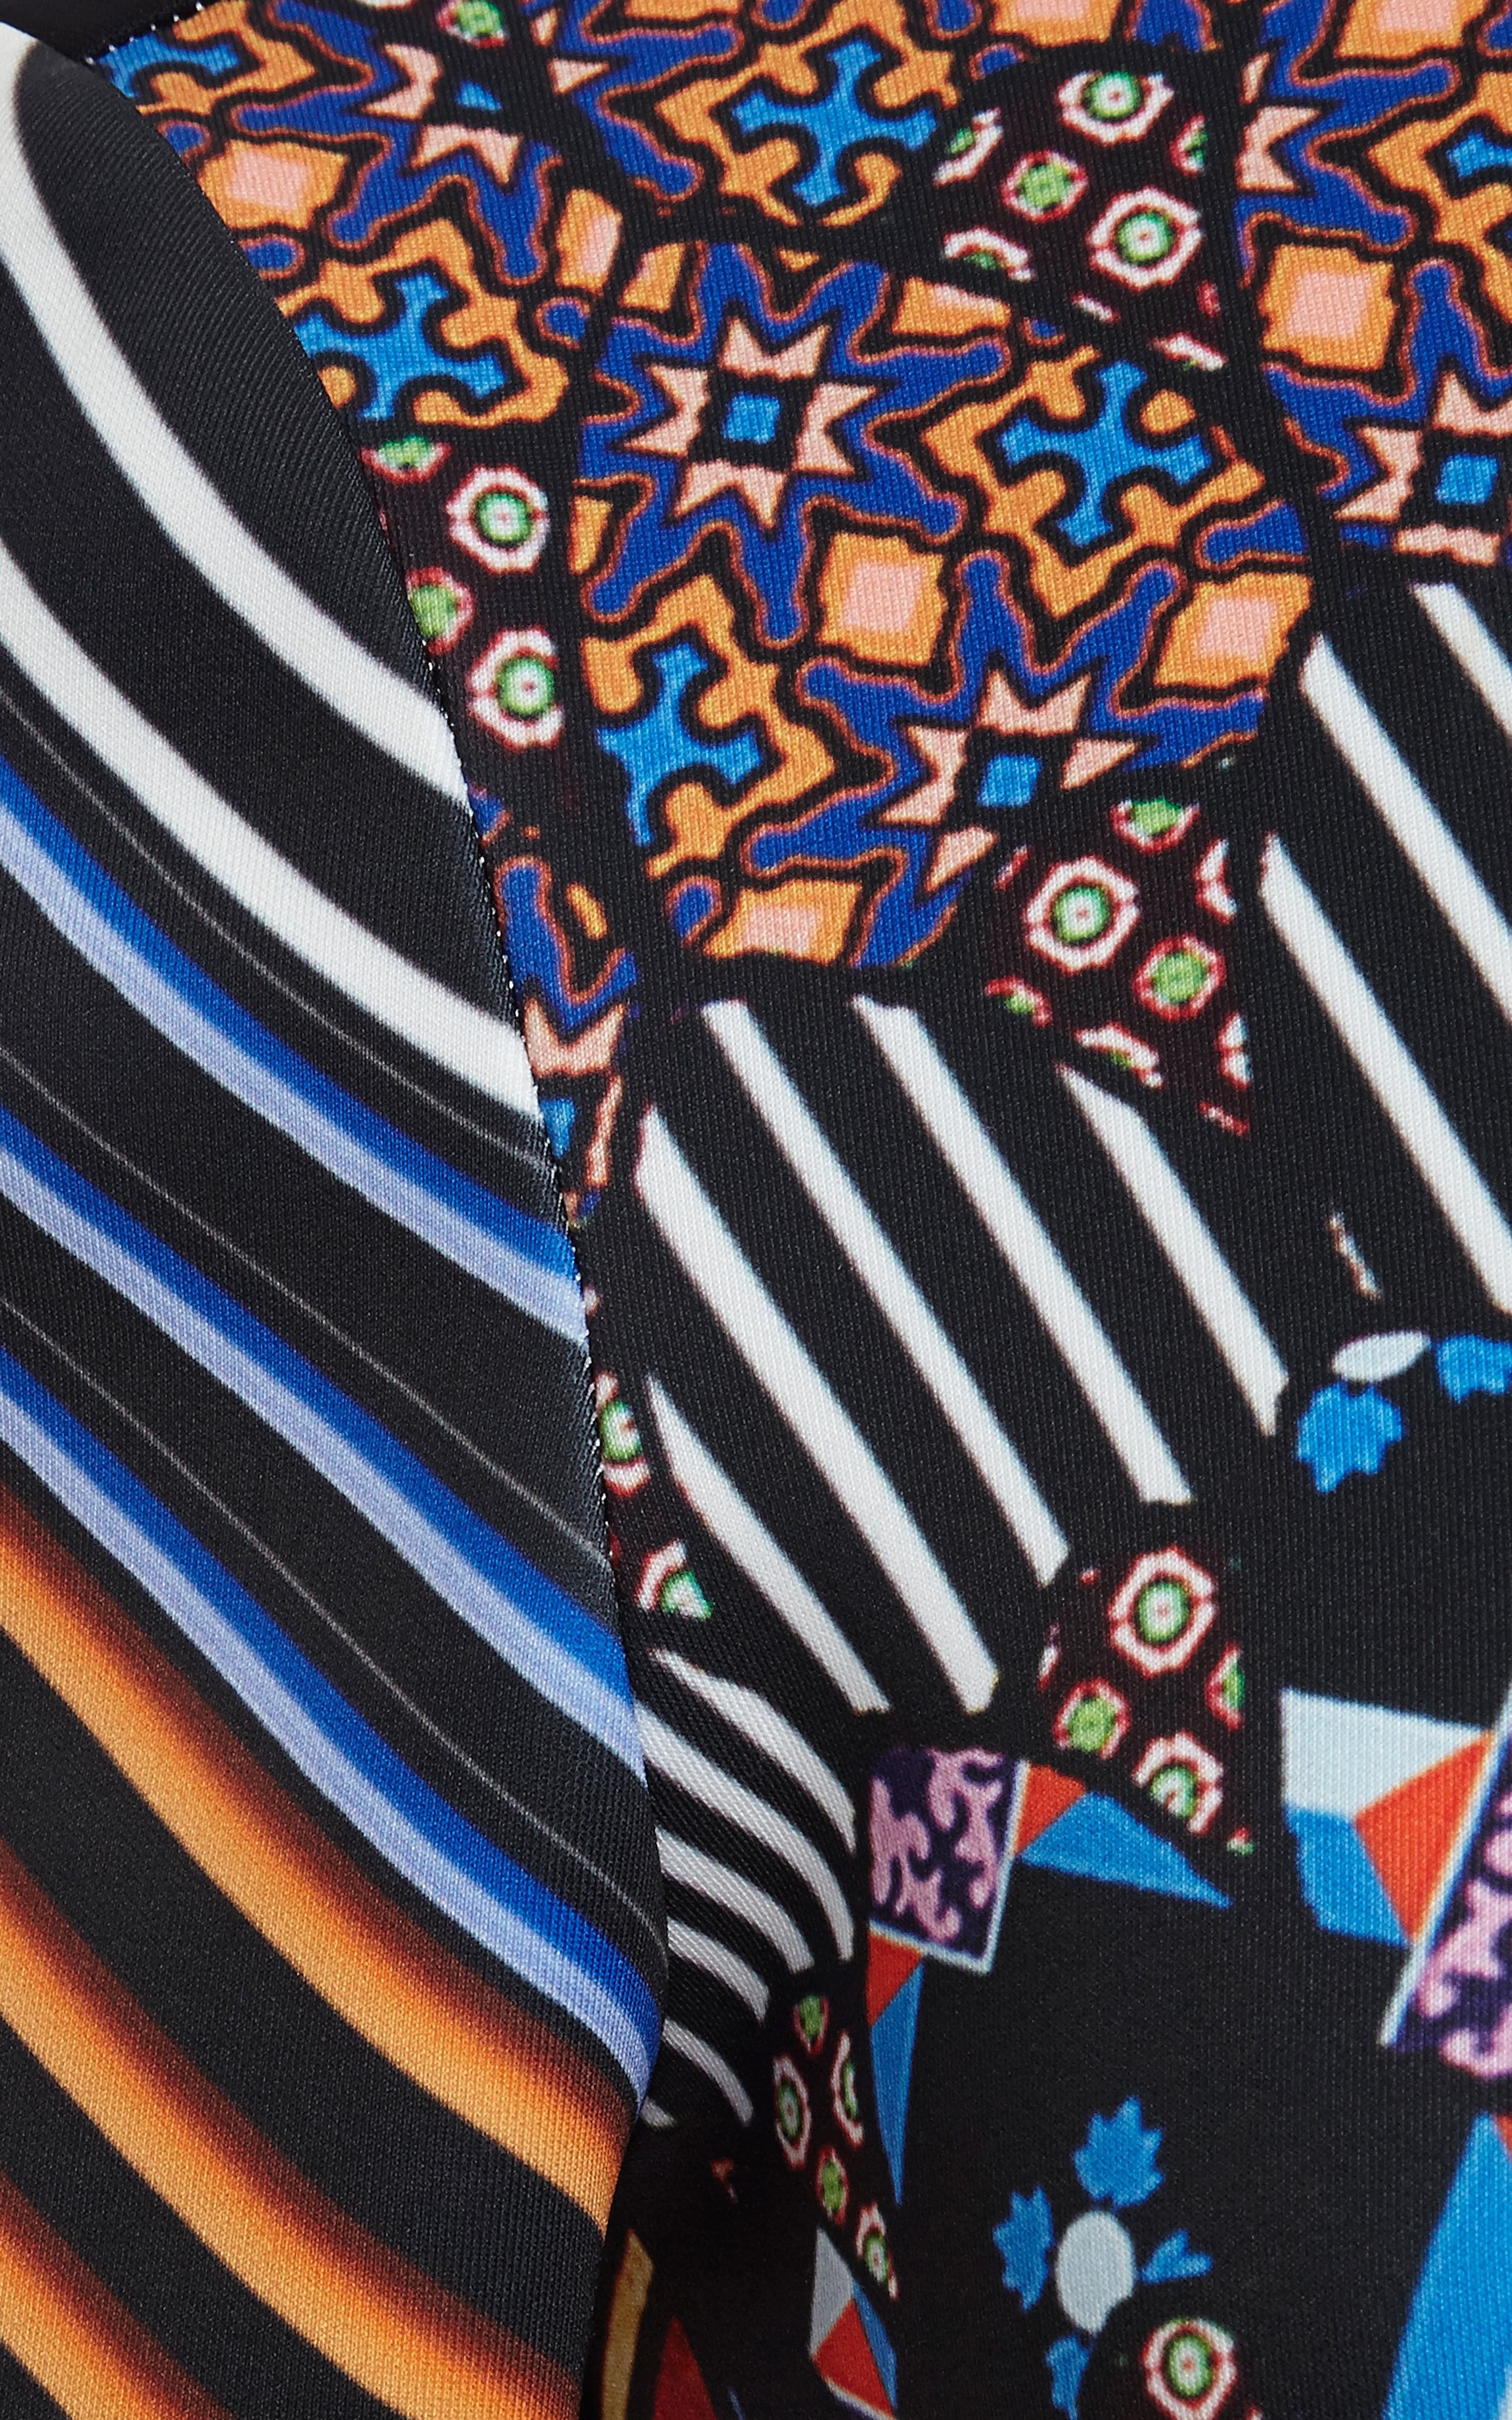 Stained glass print maxi dress